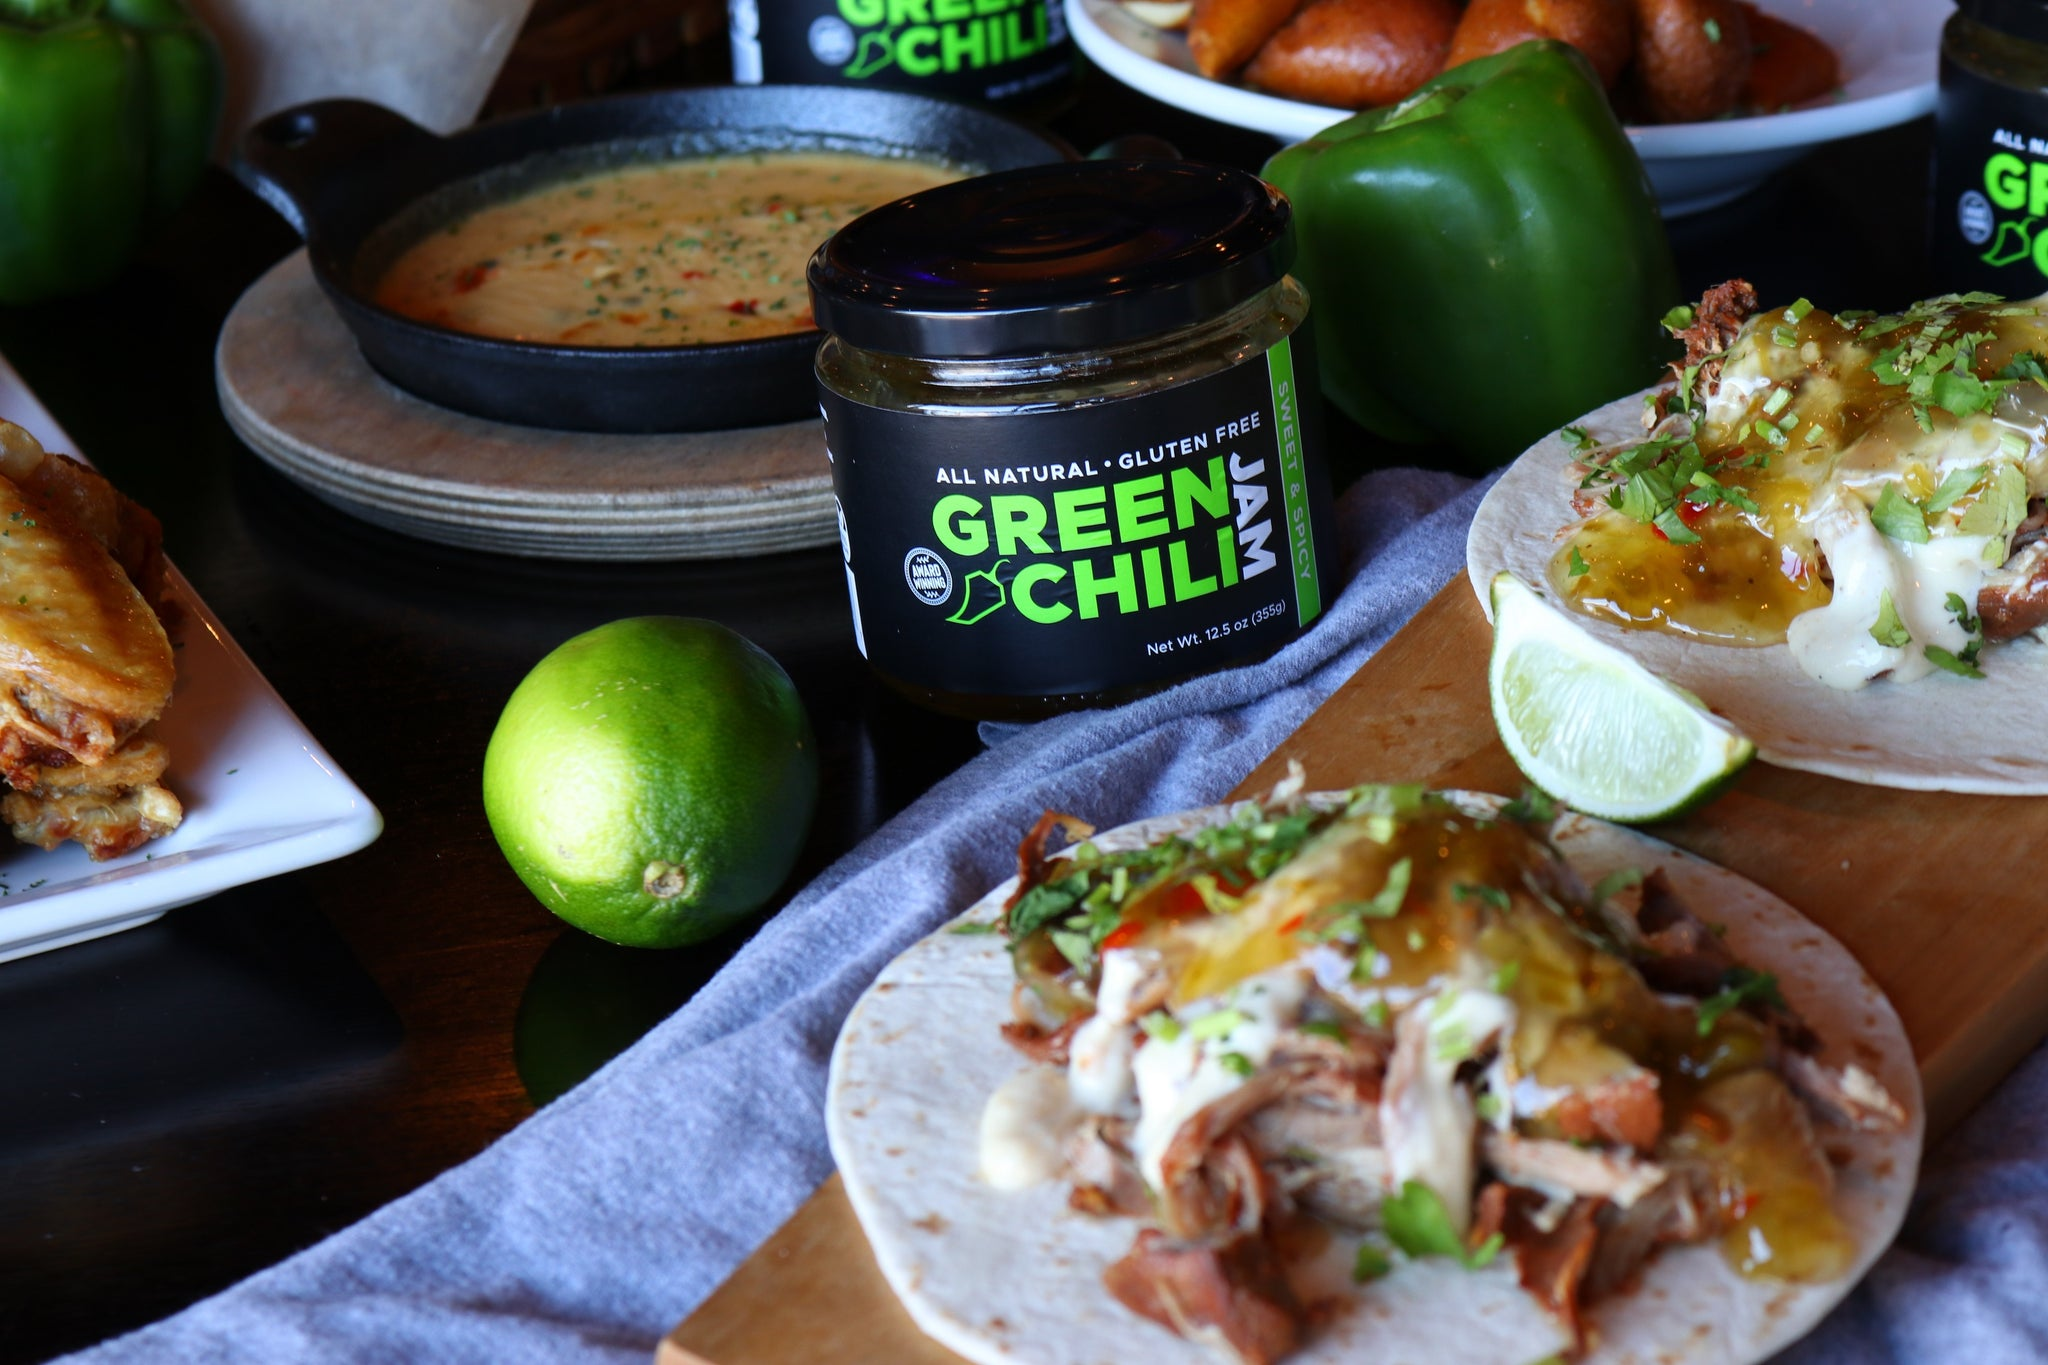 Big Whisk Brands' Green Chili Jam, all-natural, vegan, gluten-free sweet and spicy pepper jam. Full of flavor and sweet heat!